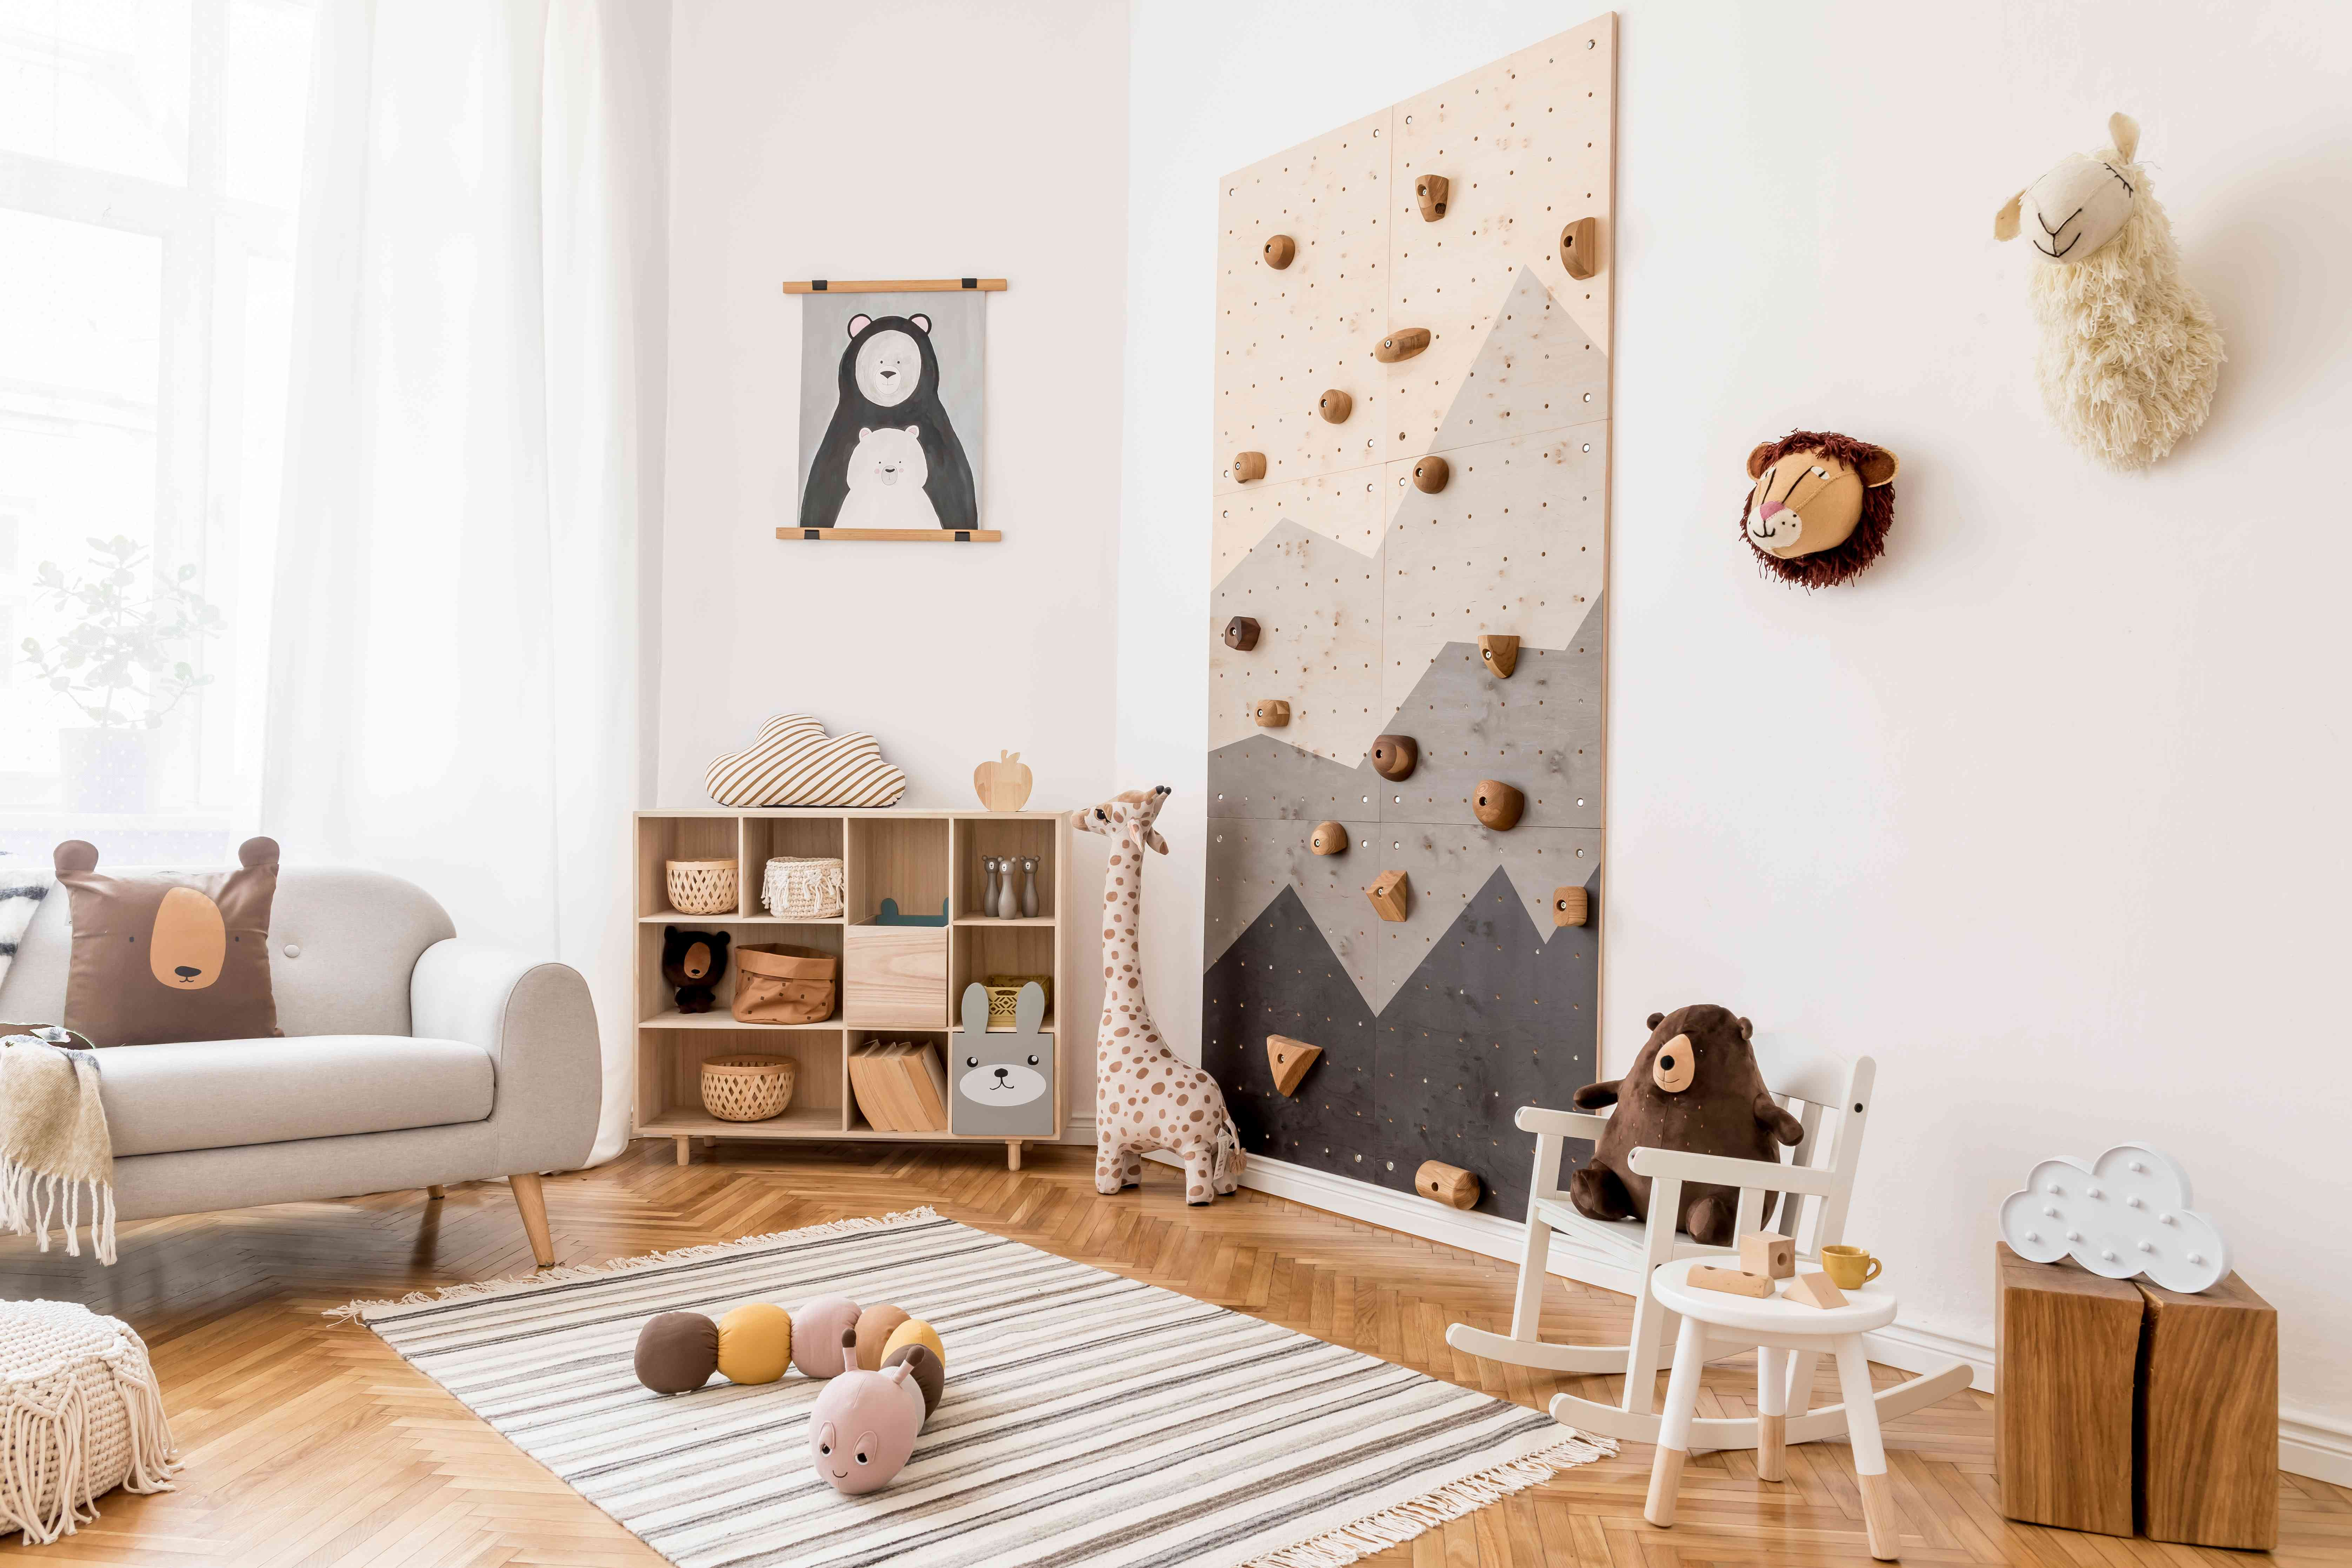 woodland theme decor ideas get the look at home.htm 17 adorable diy ideas for your woodland nursery  diy ideas for your woodland nursery